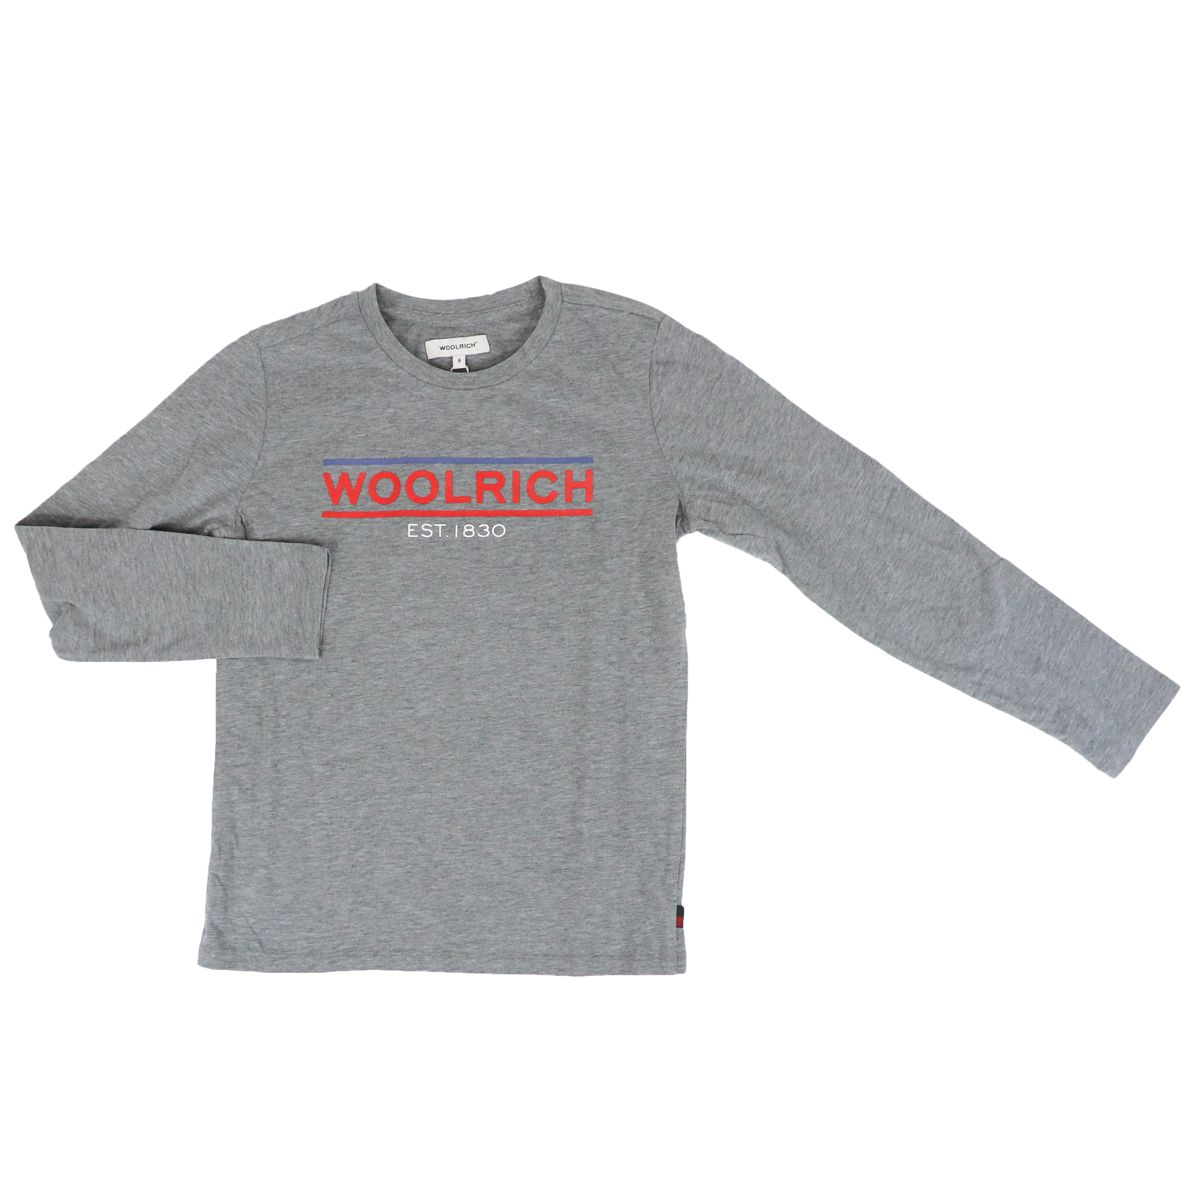 Long sleeve t-shirt with logo Grey Woolrich